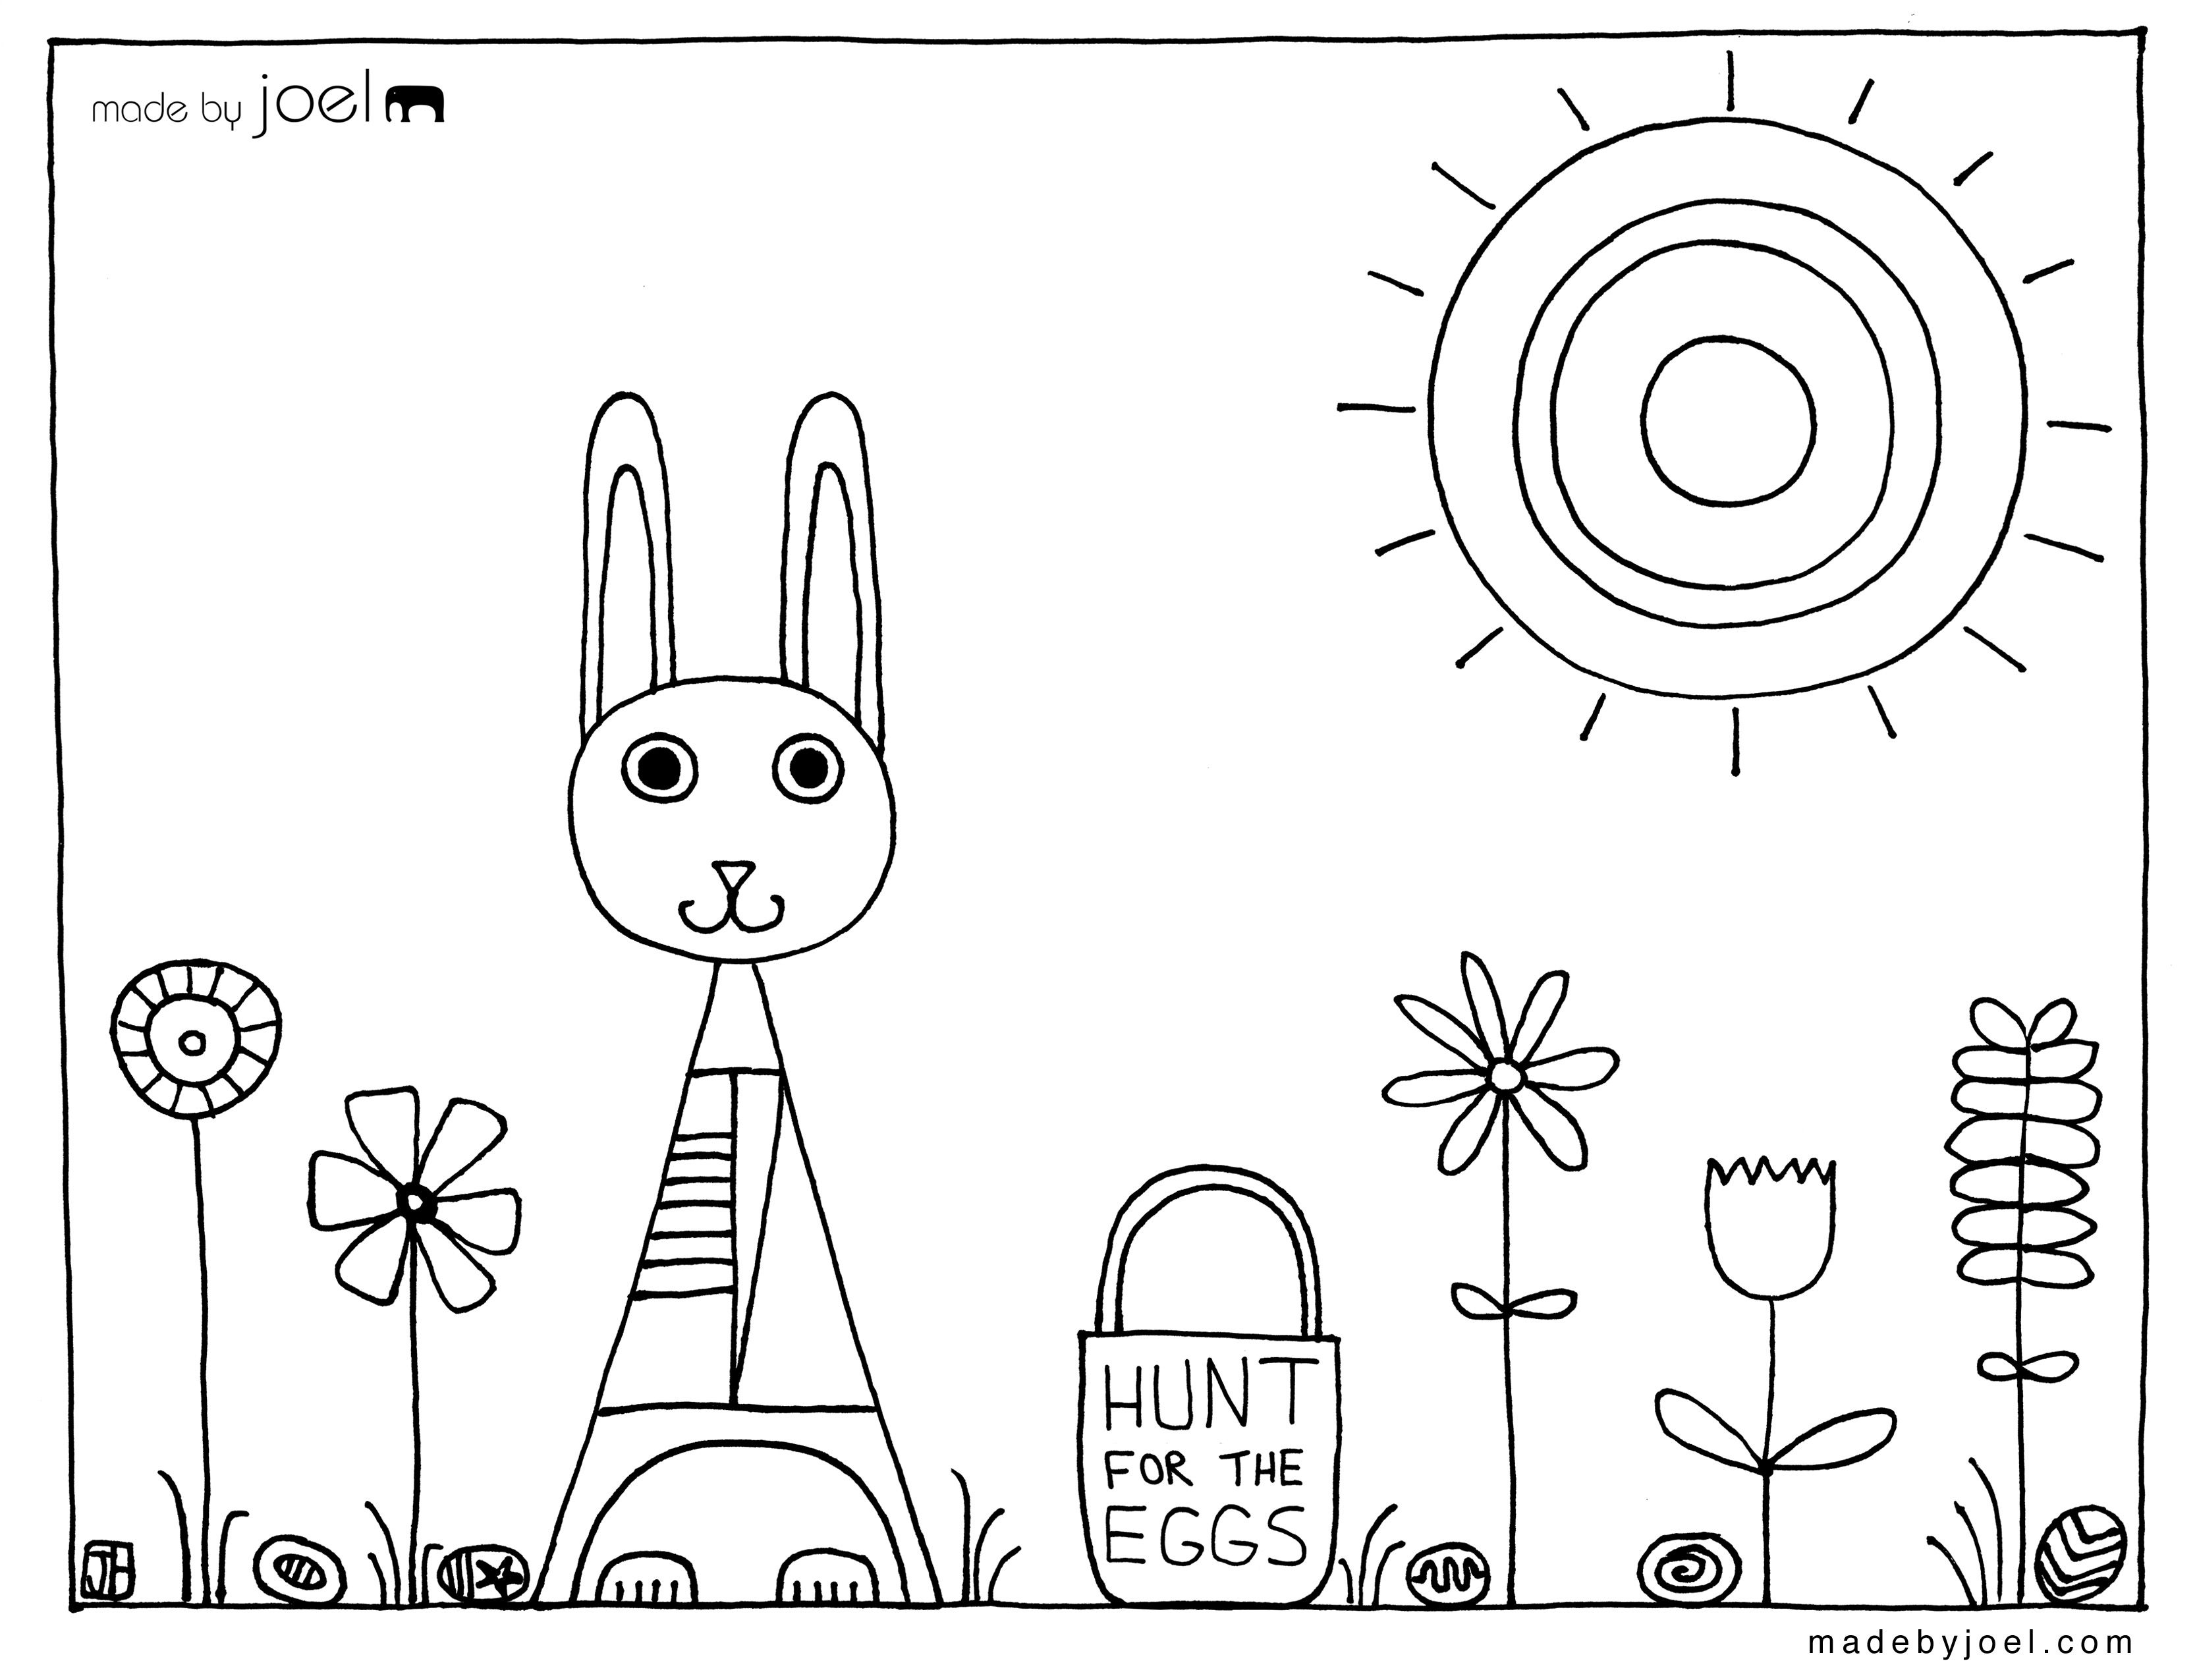 Made by Joel » #Easter Coloring Sheet